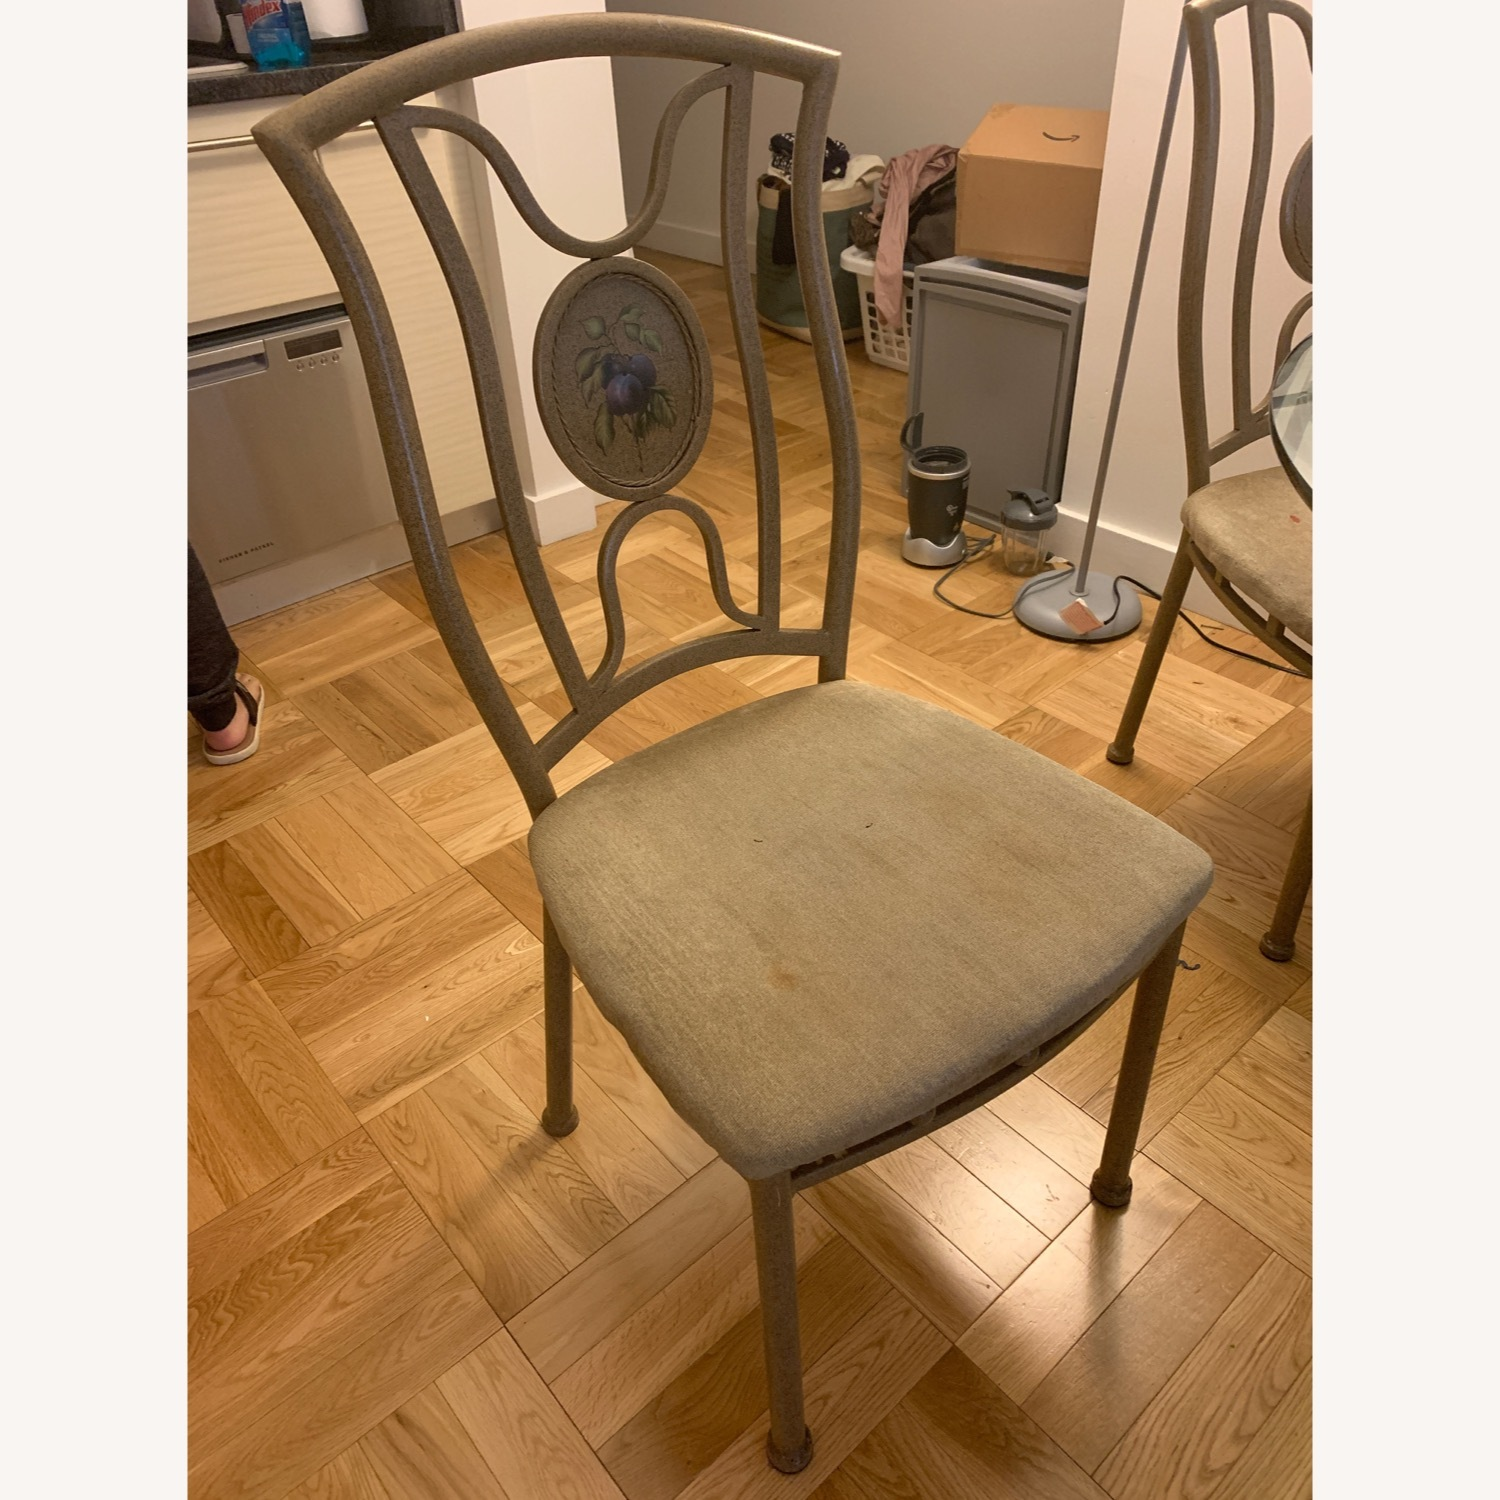 Vintage Glass Dining Room Table and Chair Set - image-4